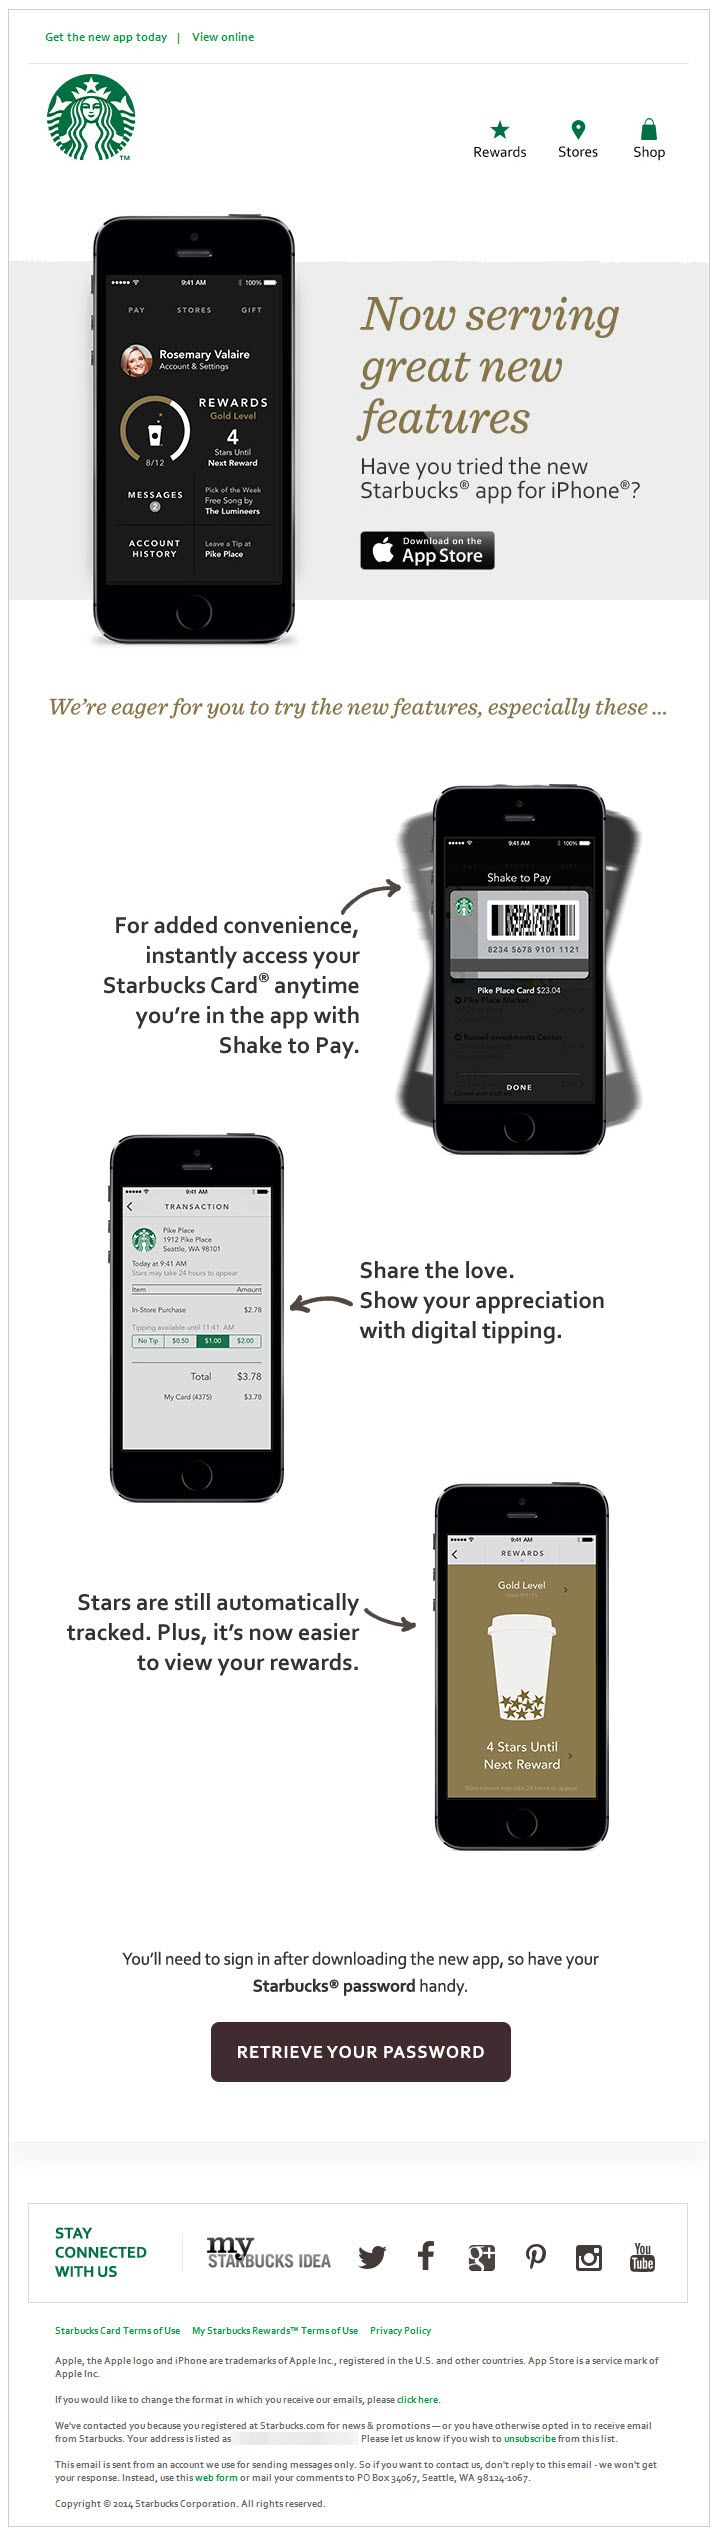 "Starbucks >> sent 3/21/14 >> The new Starbucks app for iPhone is ready to download >> This is a great app update announcement, complete with feature highlights and a relevant ""Retrieve Your Password"" call-to-action. And, of course, because this email targets smartphone users, the email is very mobile-aware, with big text and images and lots of white space. —Chris Studabaker, Regional Director of Strategic Services, Salesforce ExactTarget Marketing Cloud"